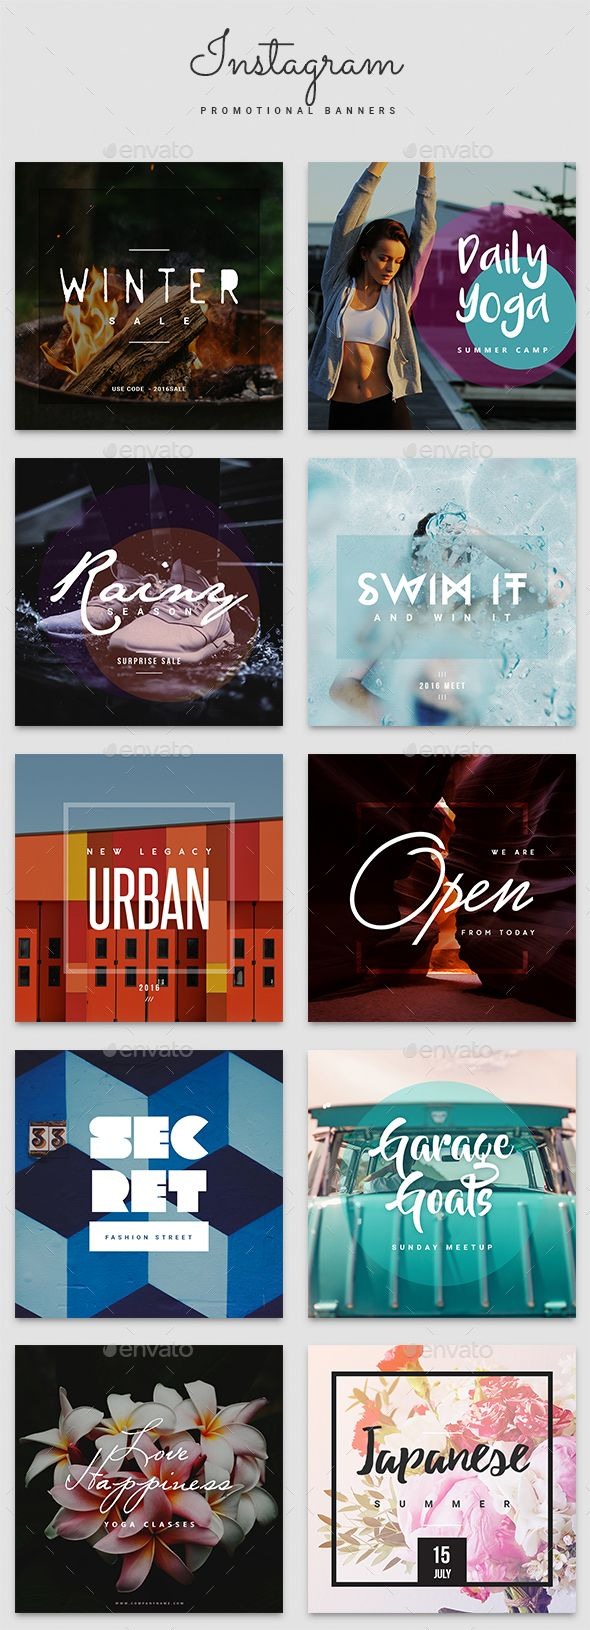 instagram promotional banner templates ad design design instagram promotional banner ads design templates banners ads web elements instagram banner template psd